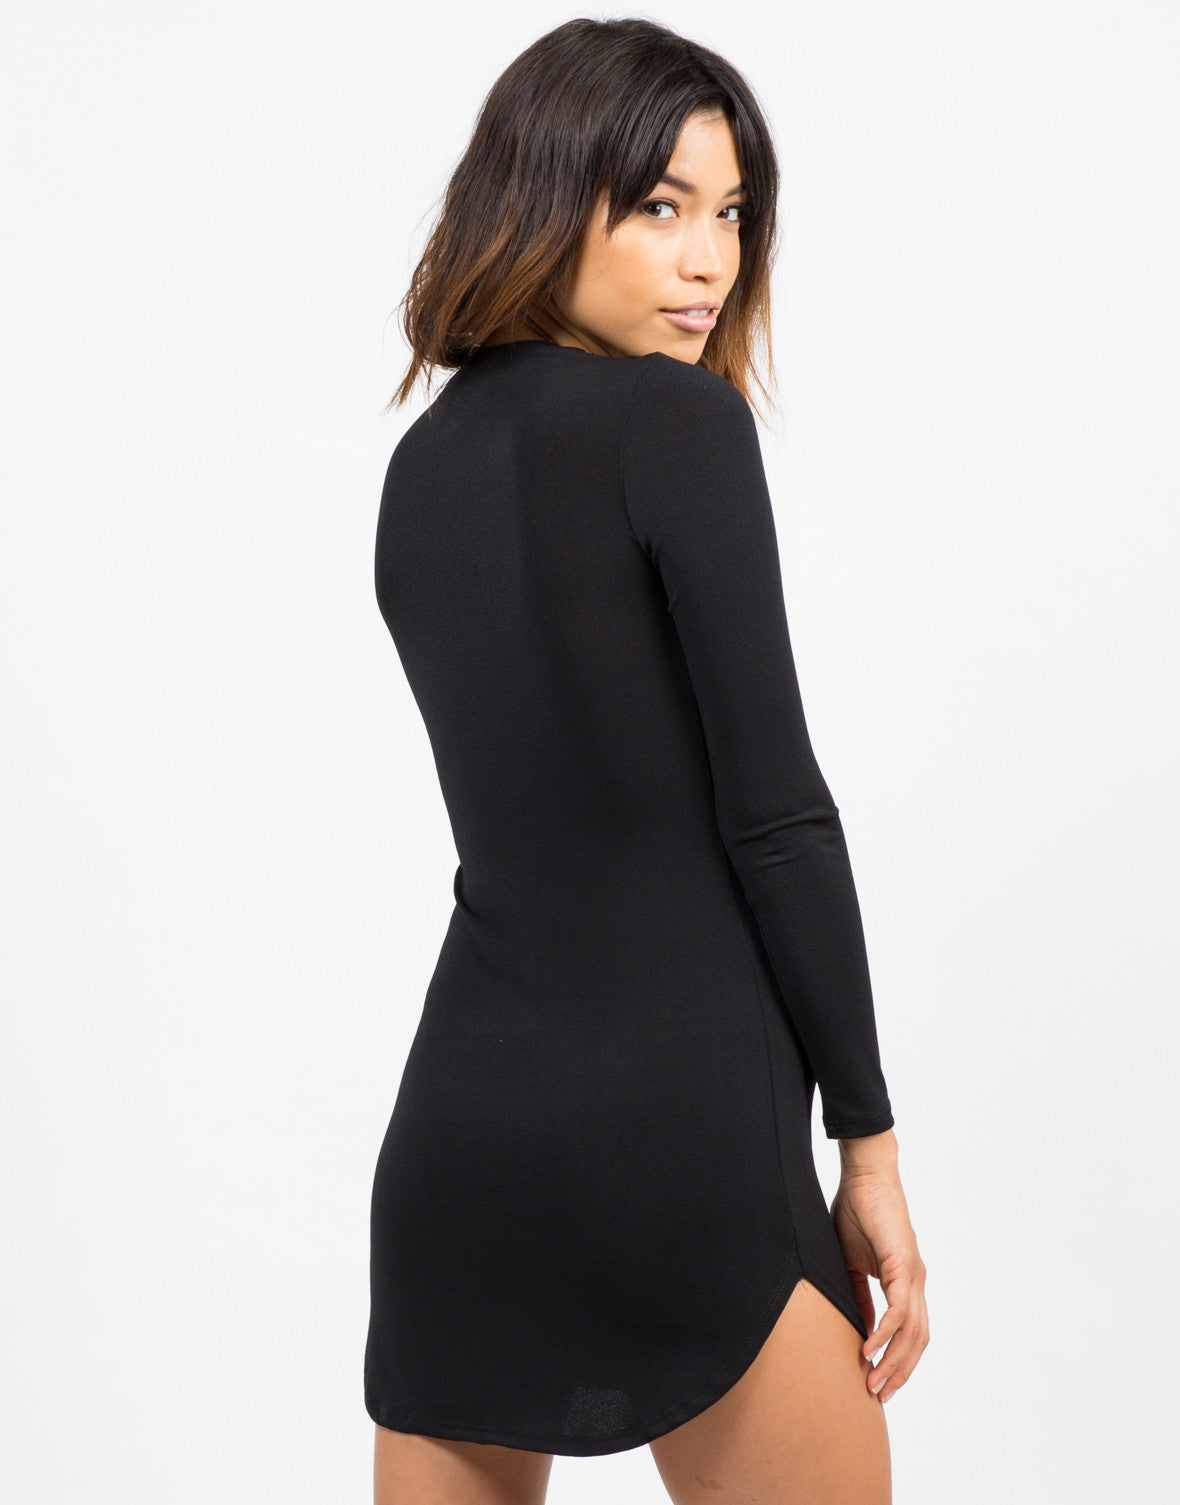 Back View of Long Sleeve LBD